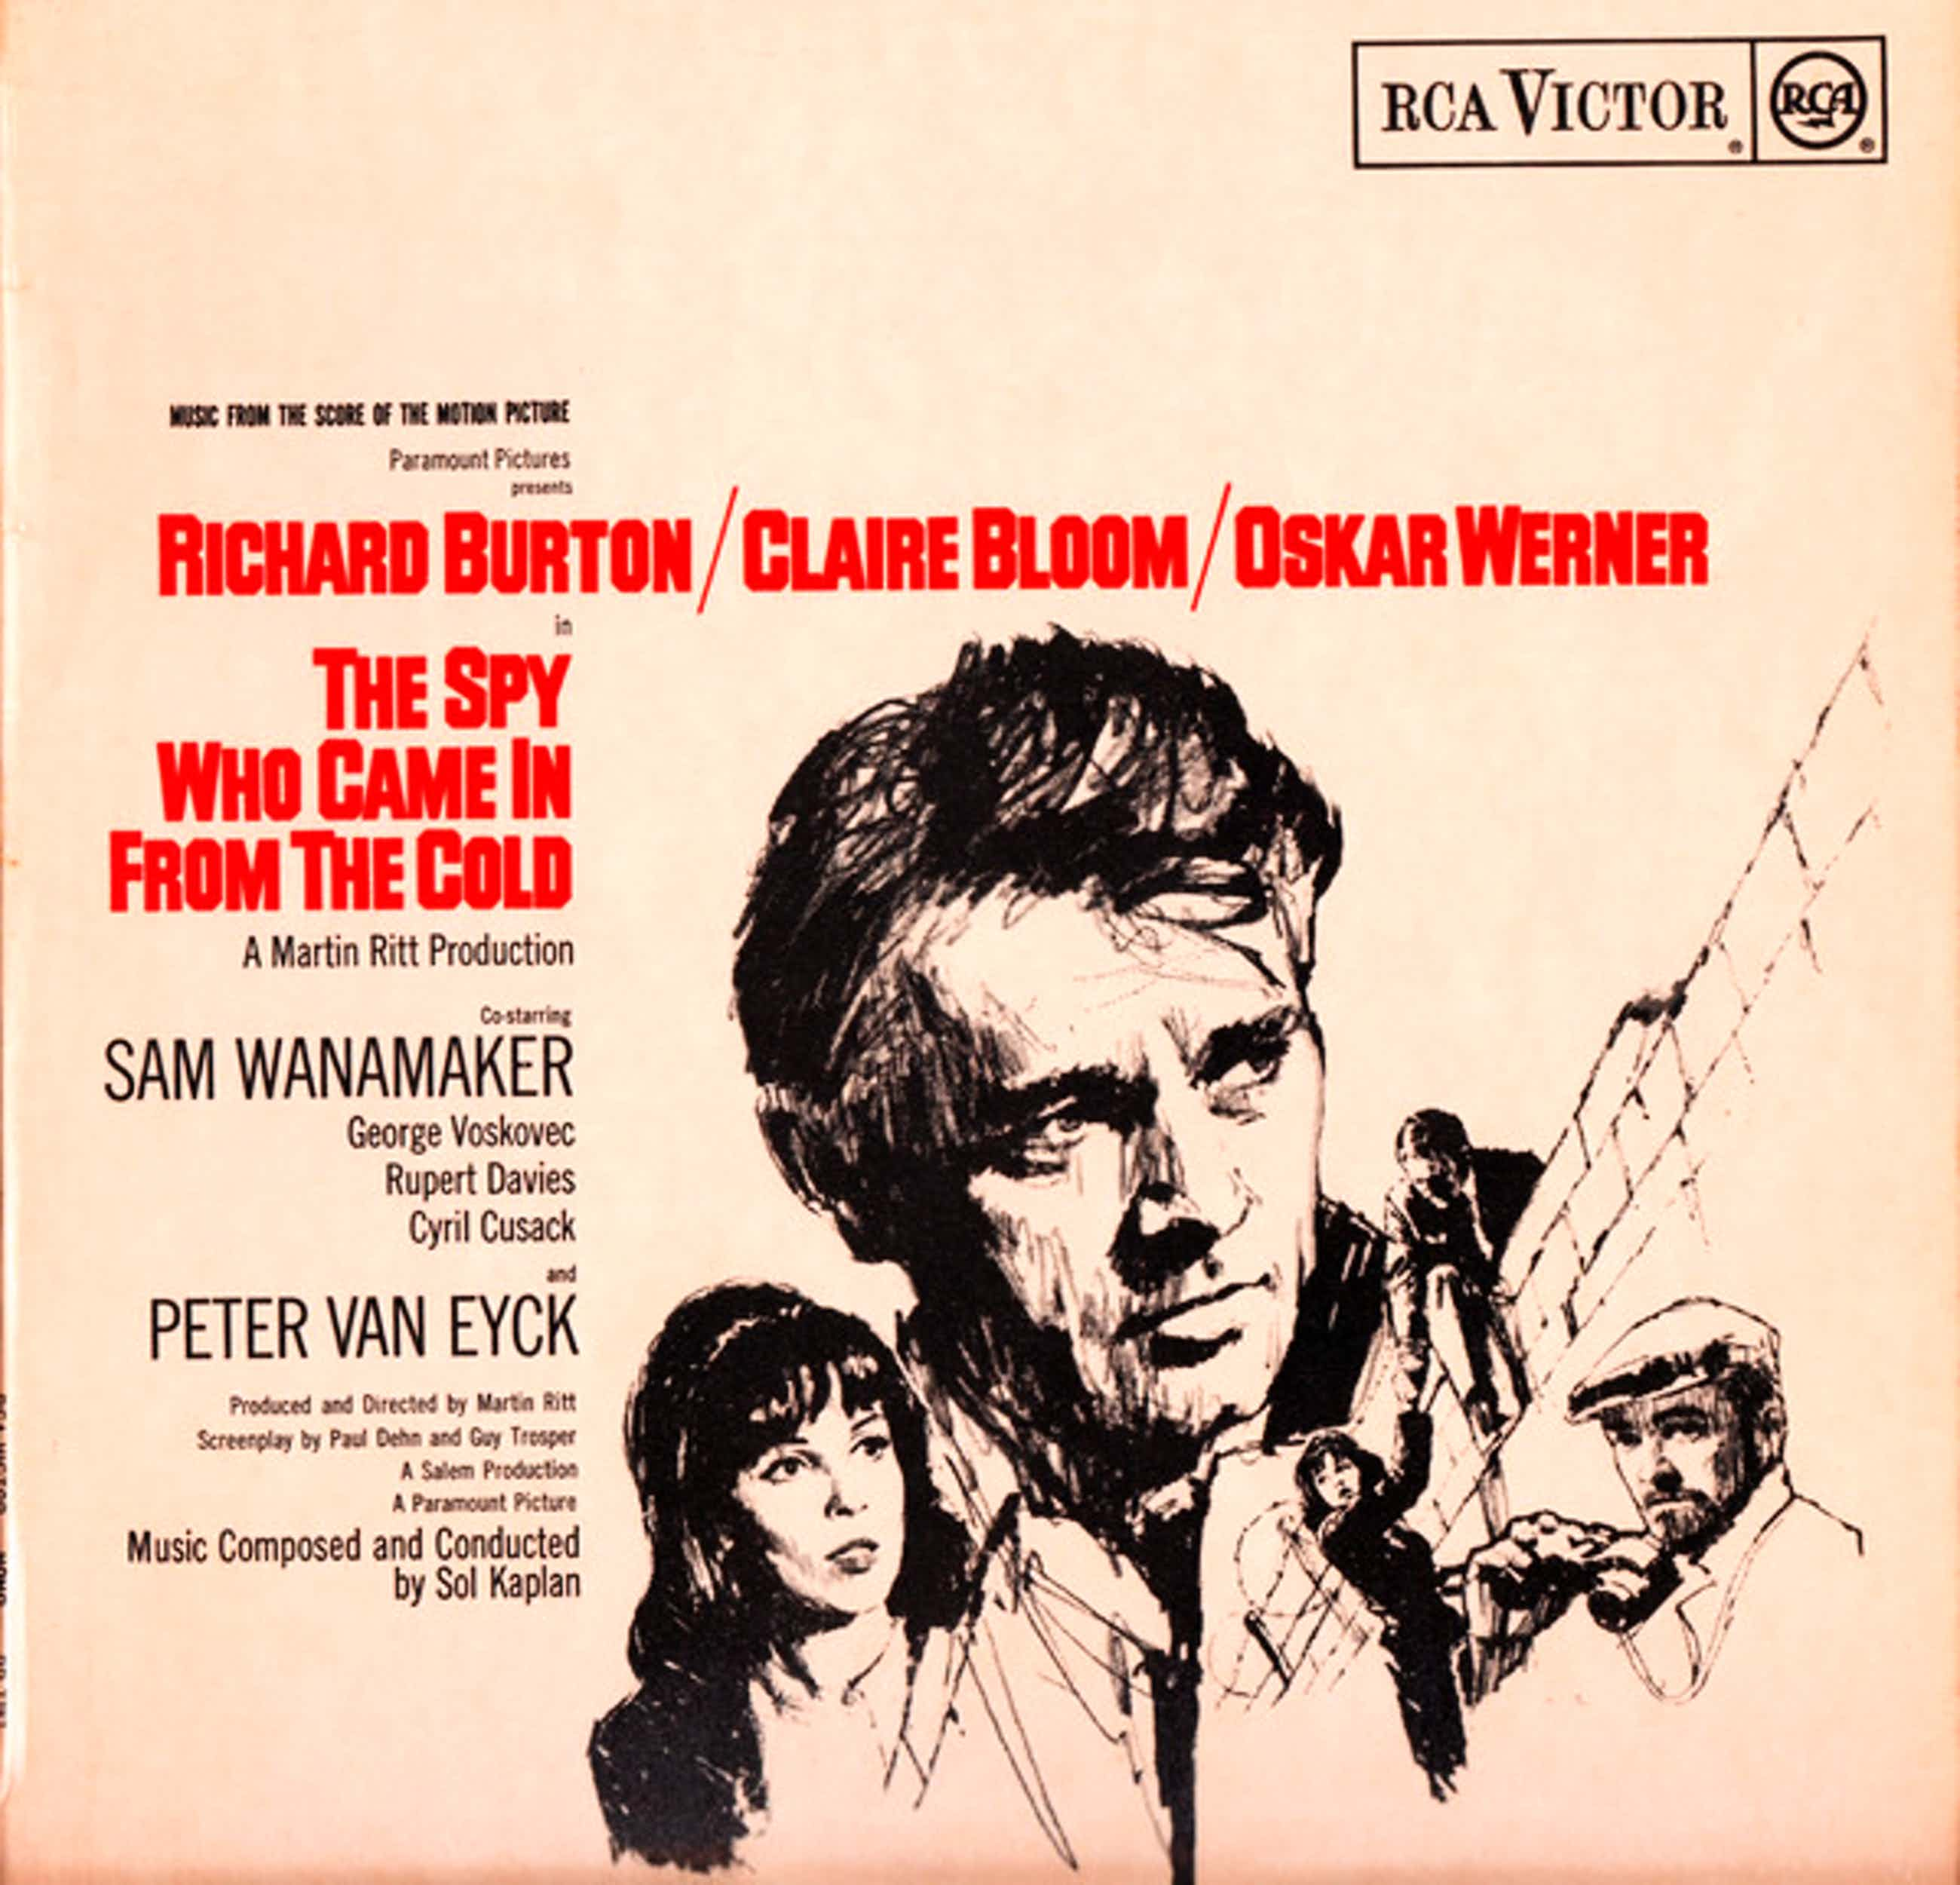 Various artists - The spy who came in from the cold - Sol Kaplan kopen? Bied vanaf 10!